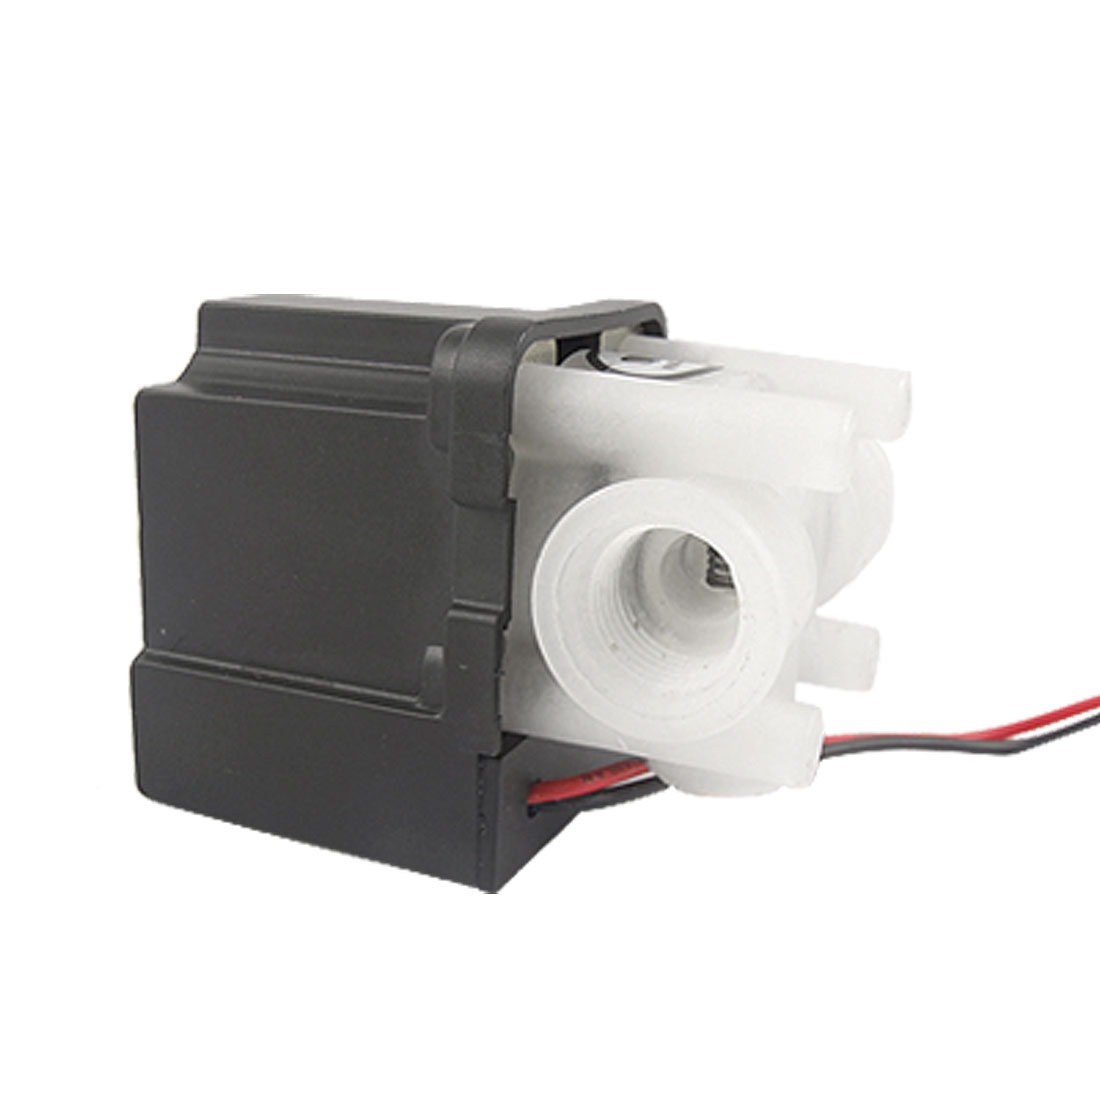 DC 24V Auto Flush Solenoid Valve for Water Dispenser